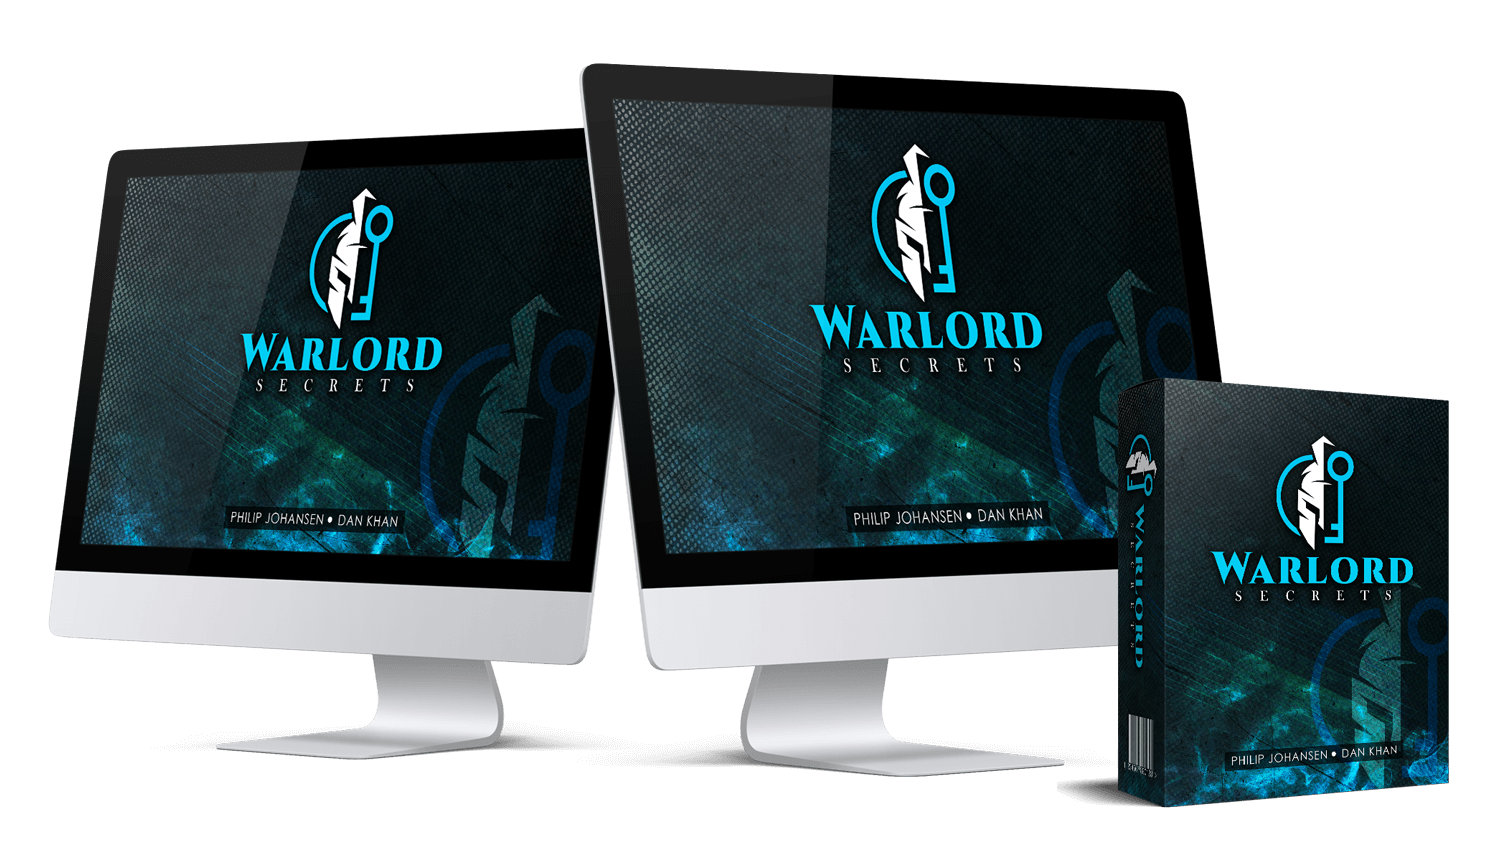 Warlord review